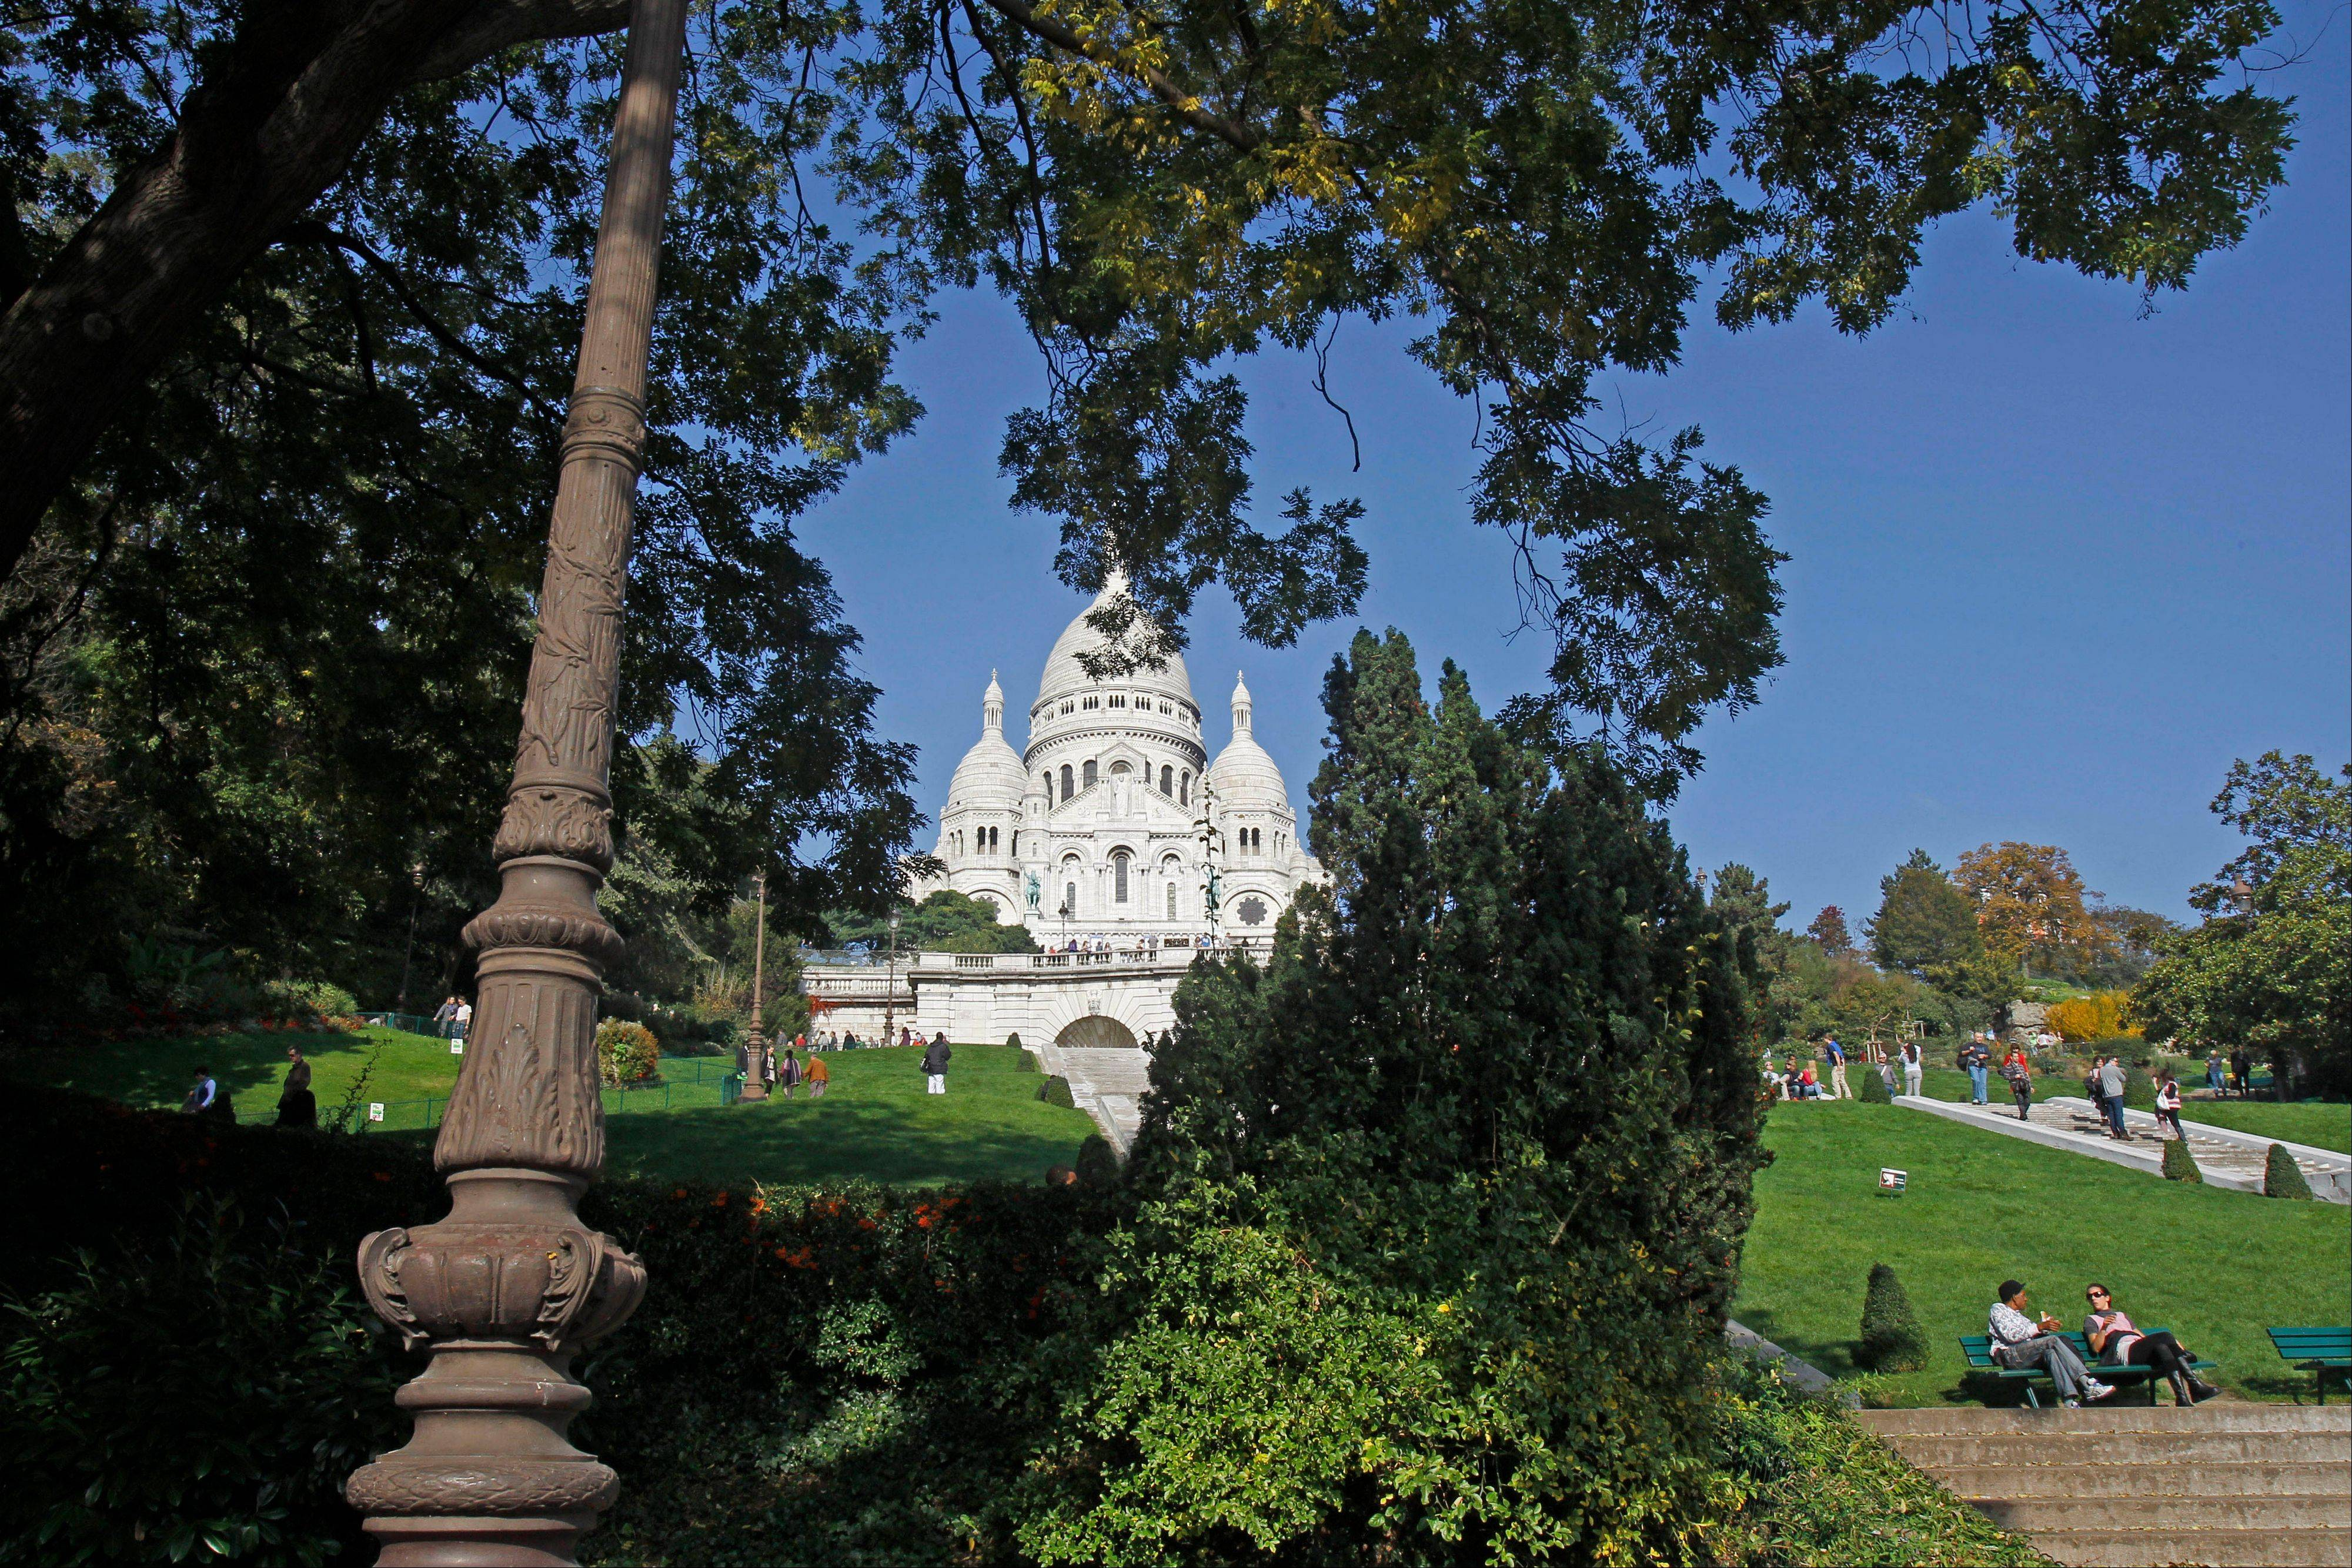 The Sacre Coeur basilica, in Pari is a The landmark white domes of this basilica indelibly mark the Paris skyline, located at the city's highest point on the Montmartre hill and features the world's largest apsis mosaic designed by Luc-Olivier Merson.